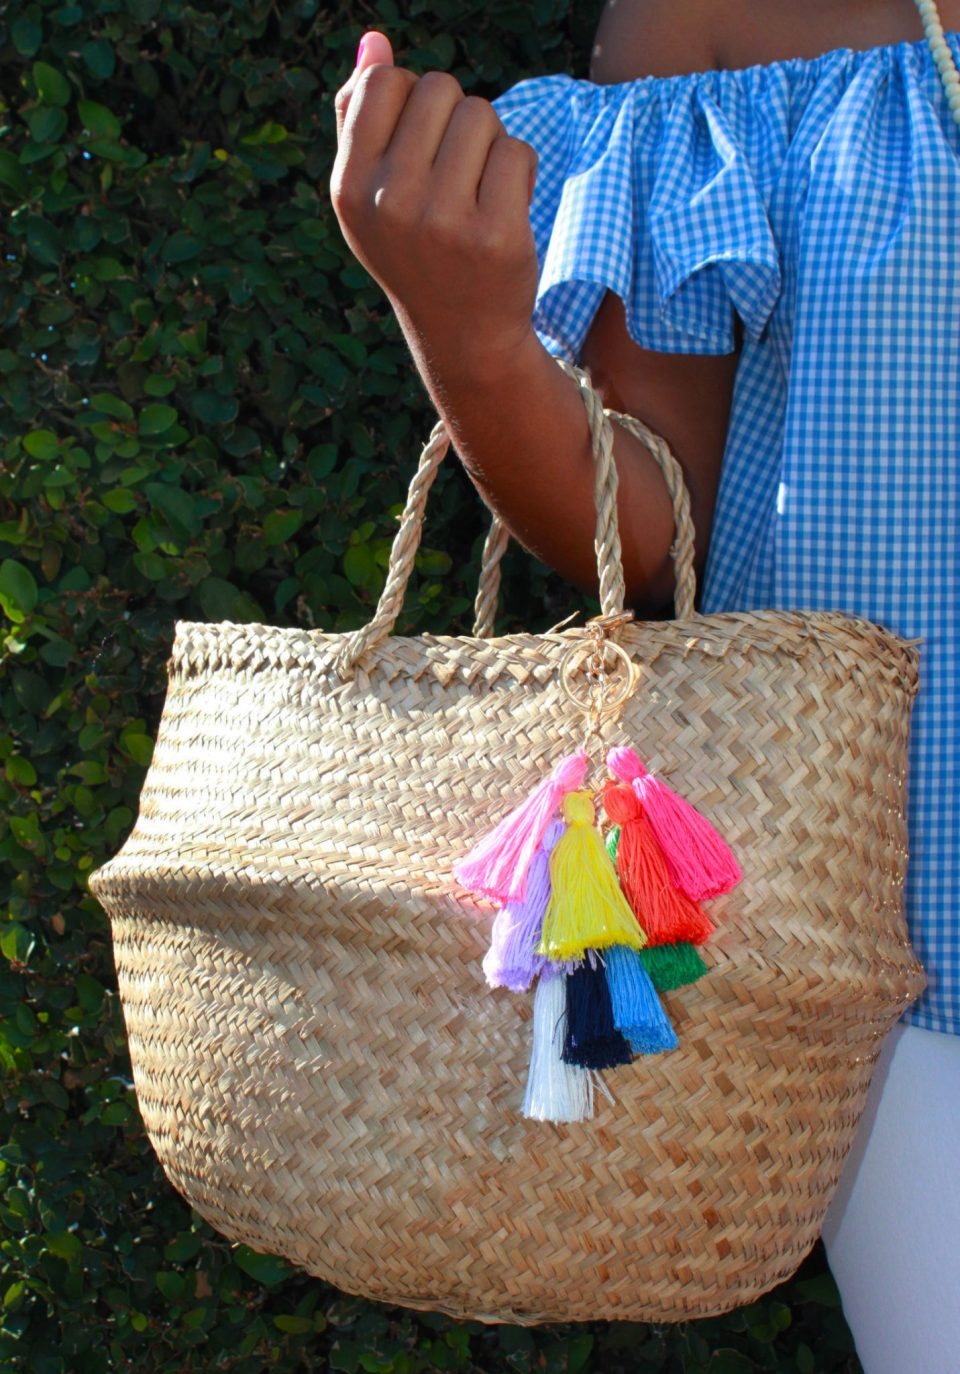 5 Tips on Pairing Southern Clothes and Accessories from Tiny Tassel Garments